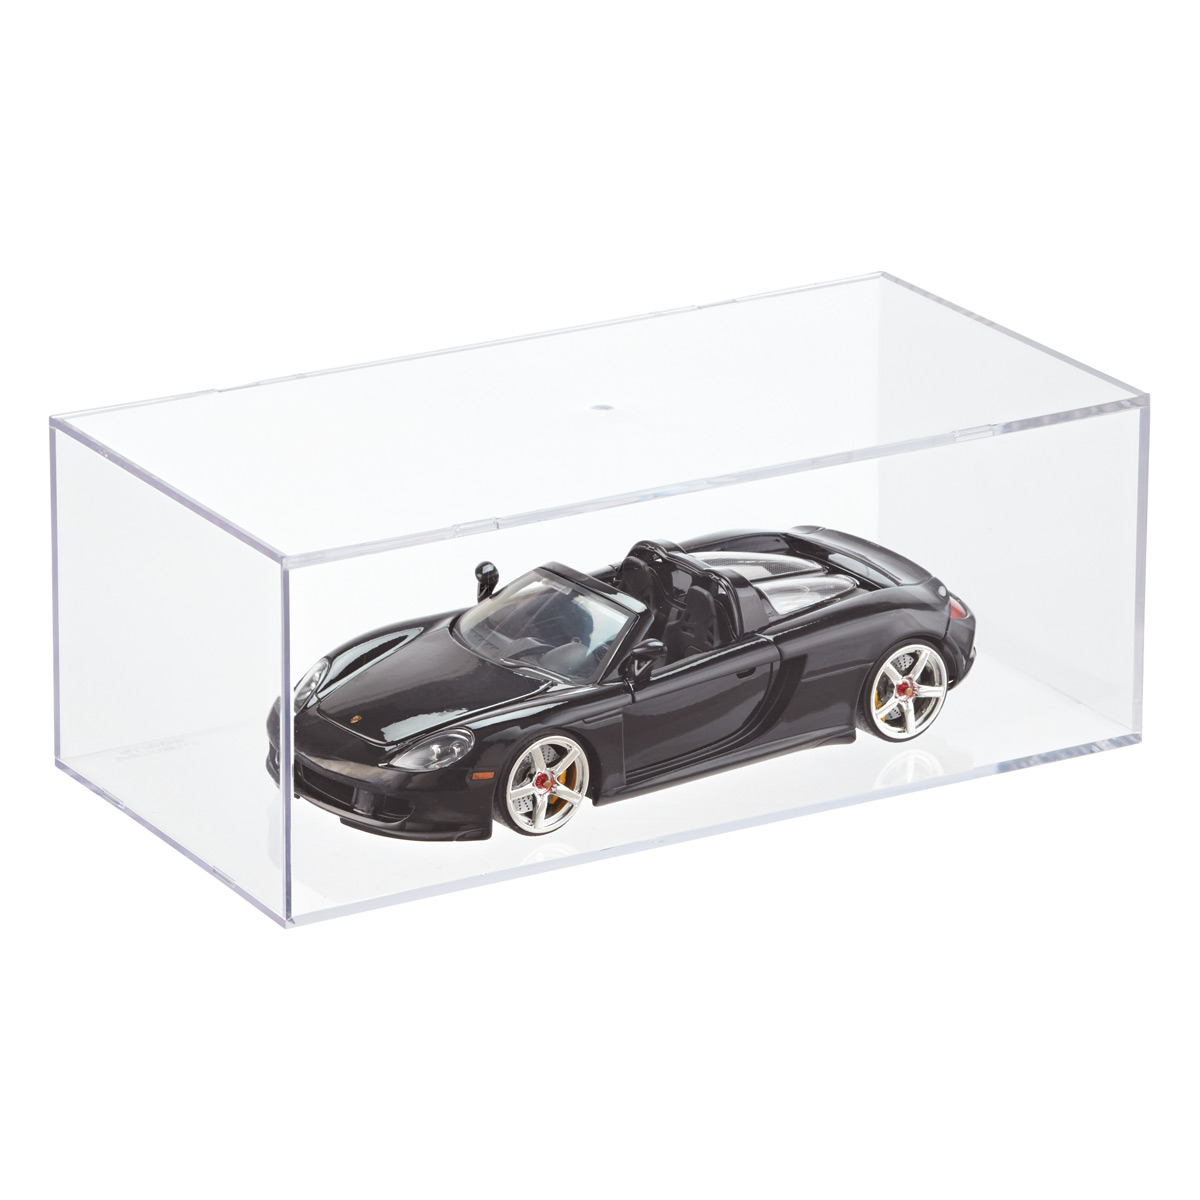 Race Car Display Cube